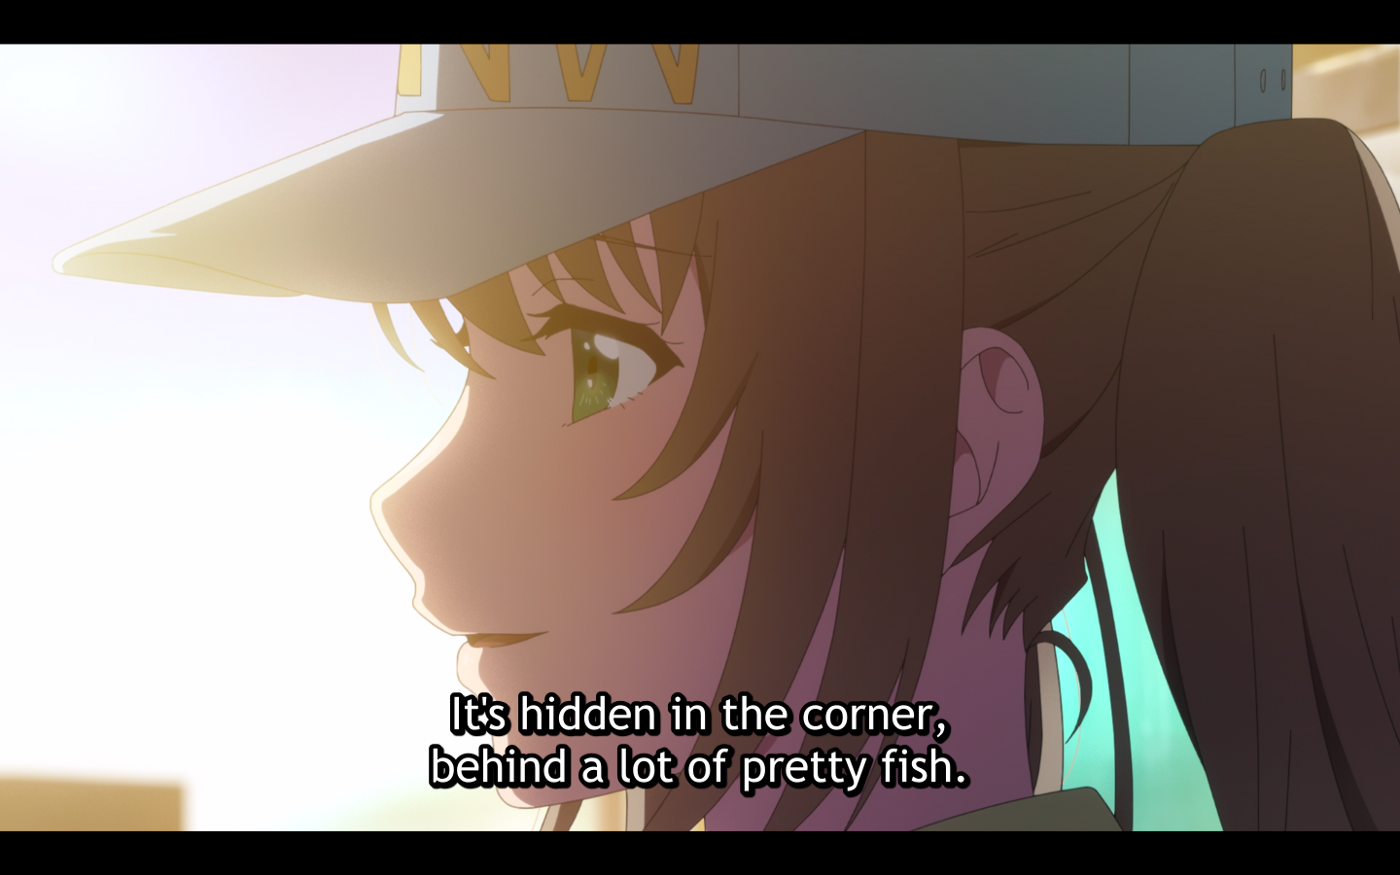 Fuuka comparing herself to the dying fish.